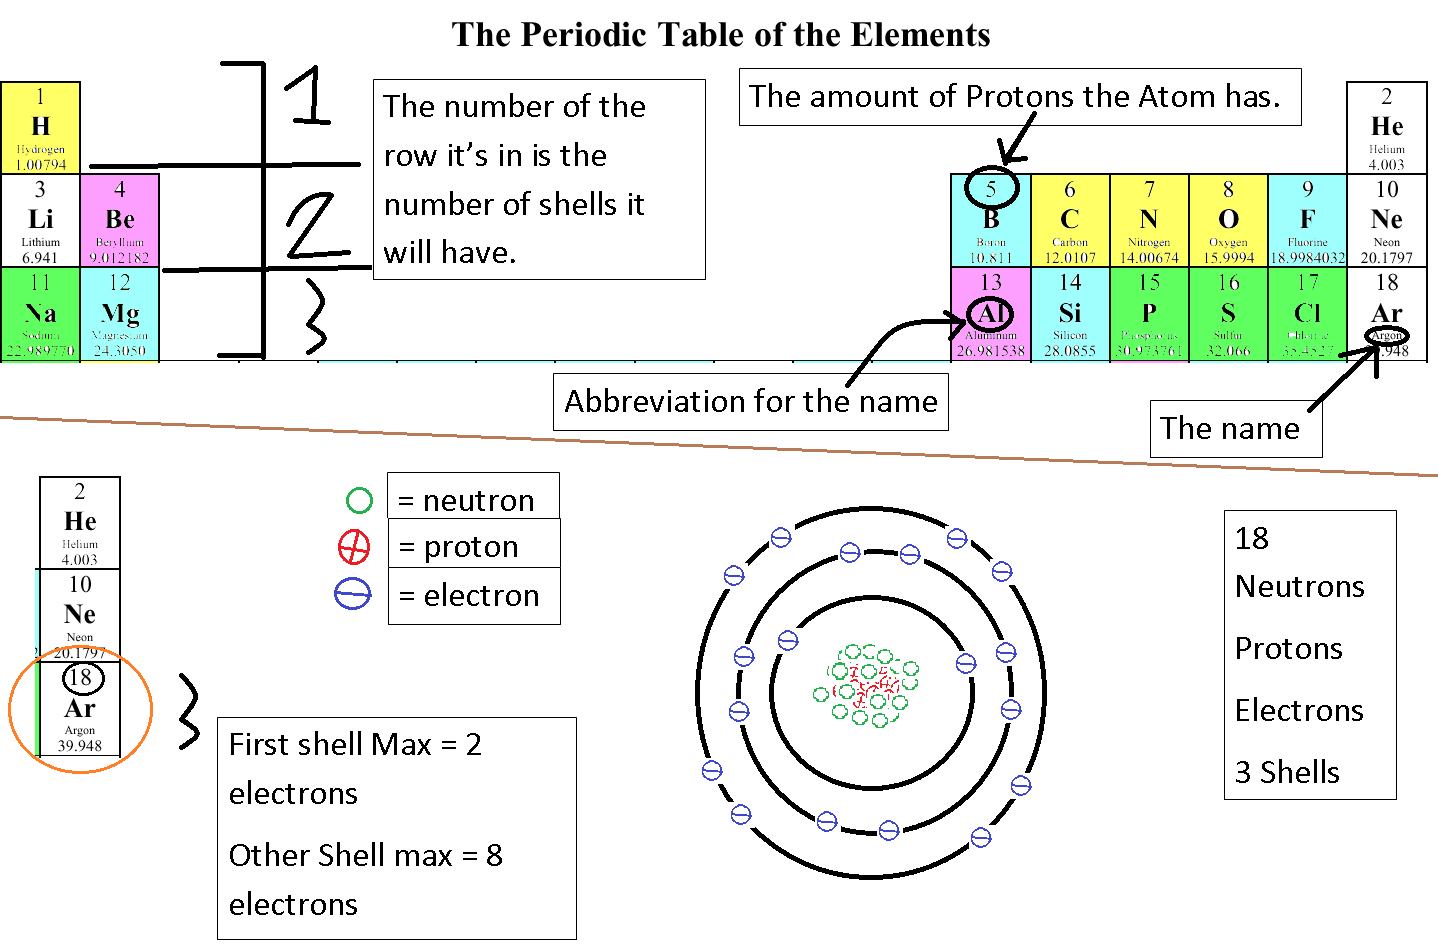 Anze M 8B Science Blog: The Octet Rule, Bohr Diagram, and